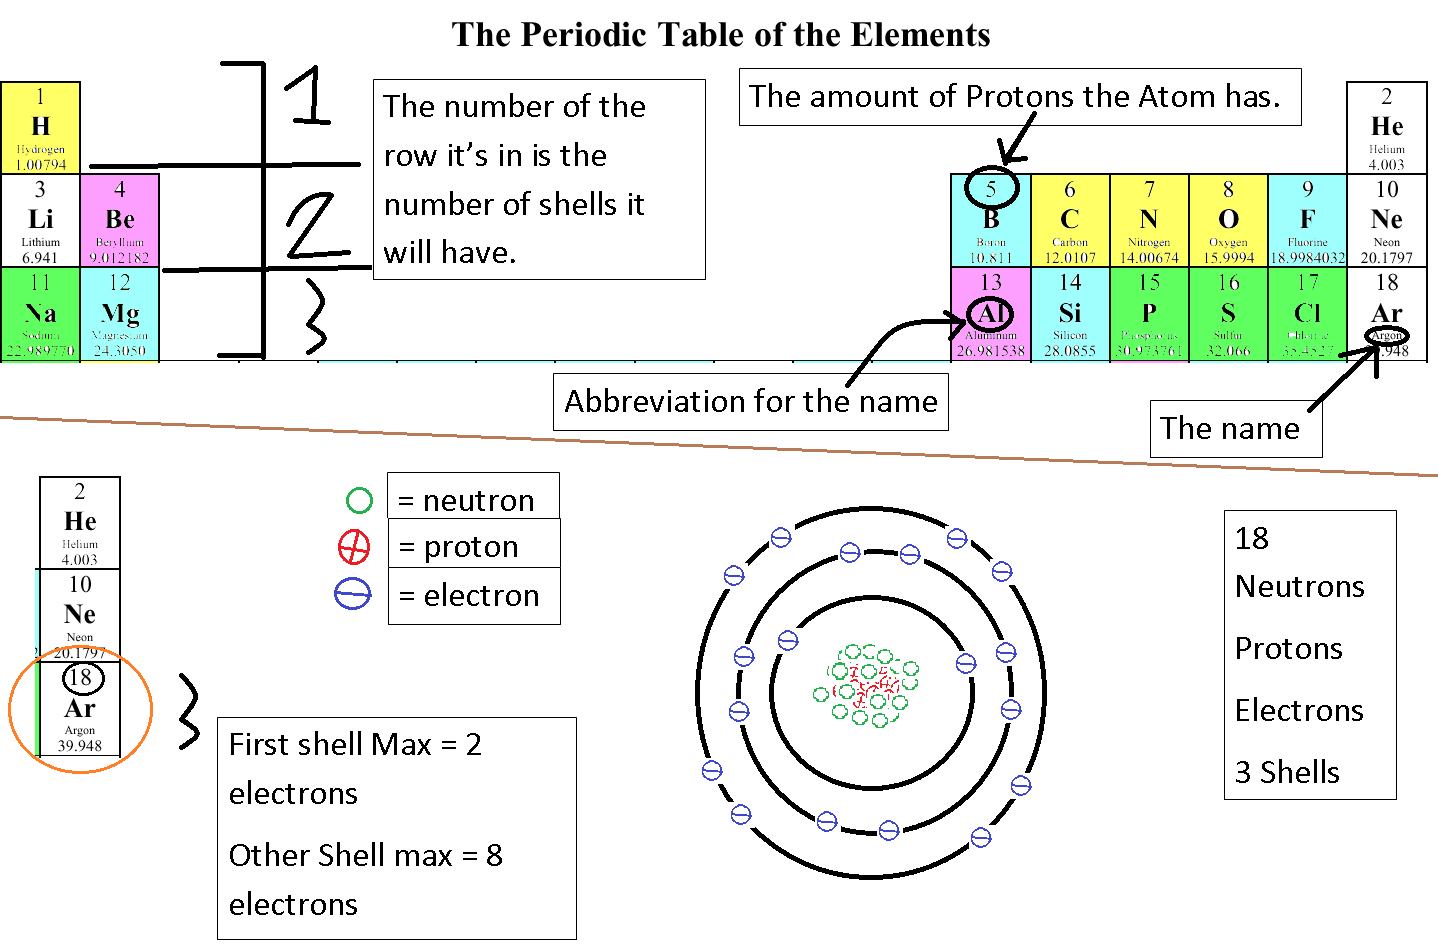 Anze M 8B Science Blog: The Octet Rule, Bohr Diagram, and